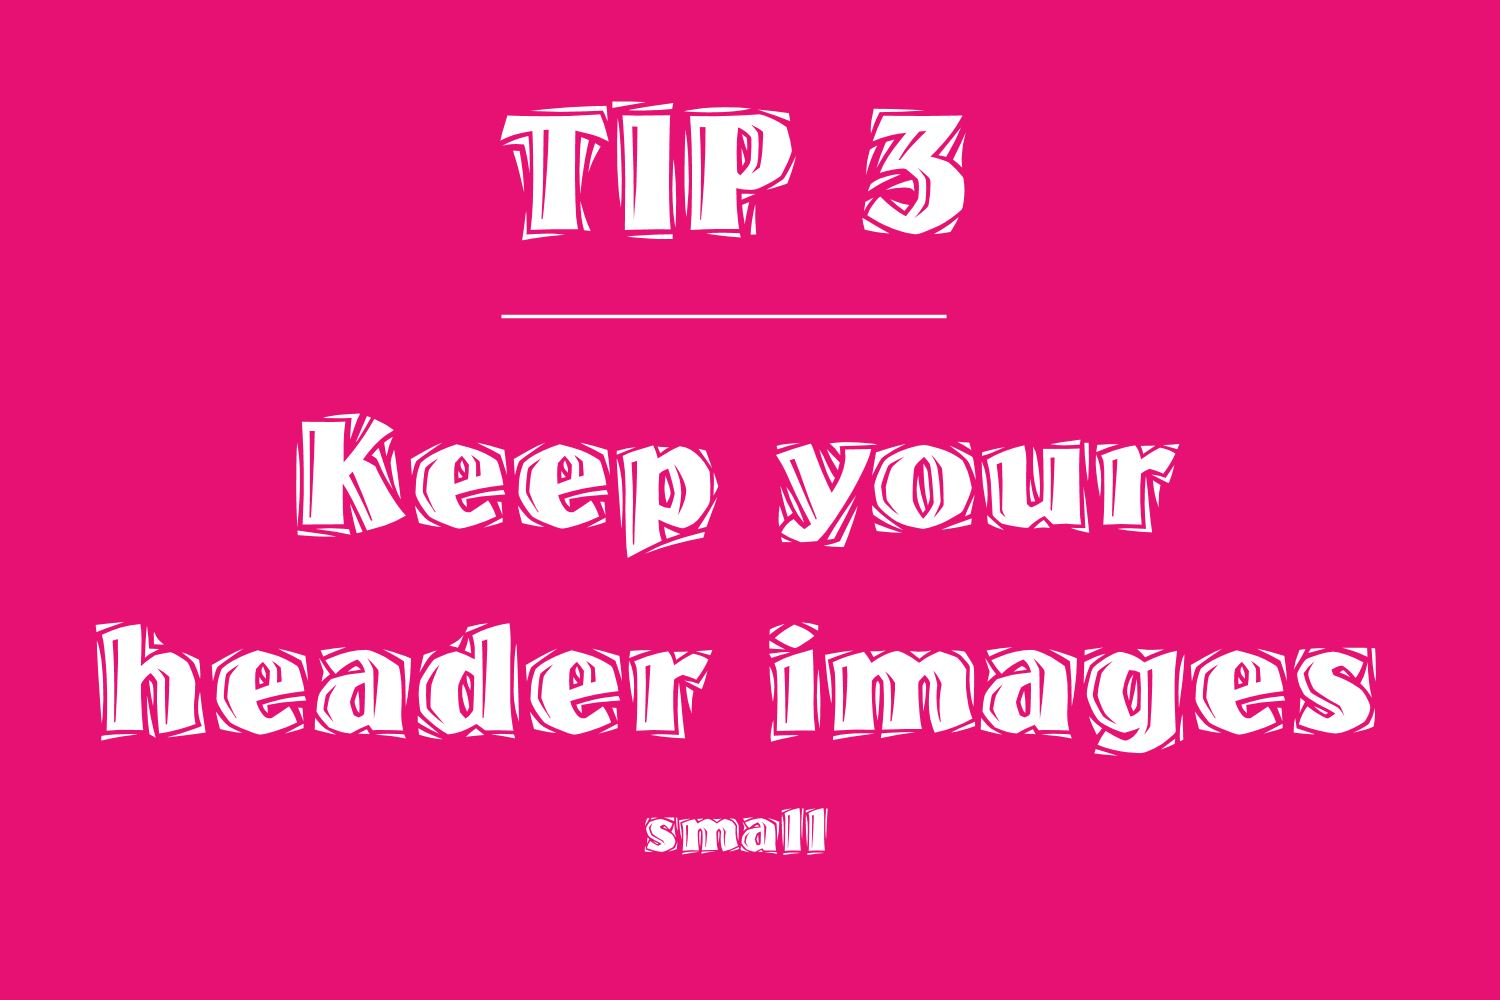 Tip 3 small headers